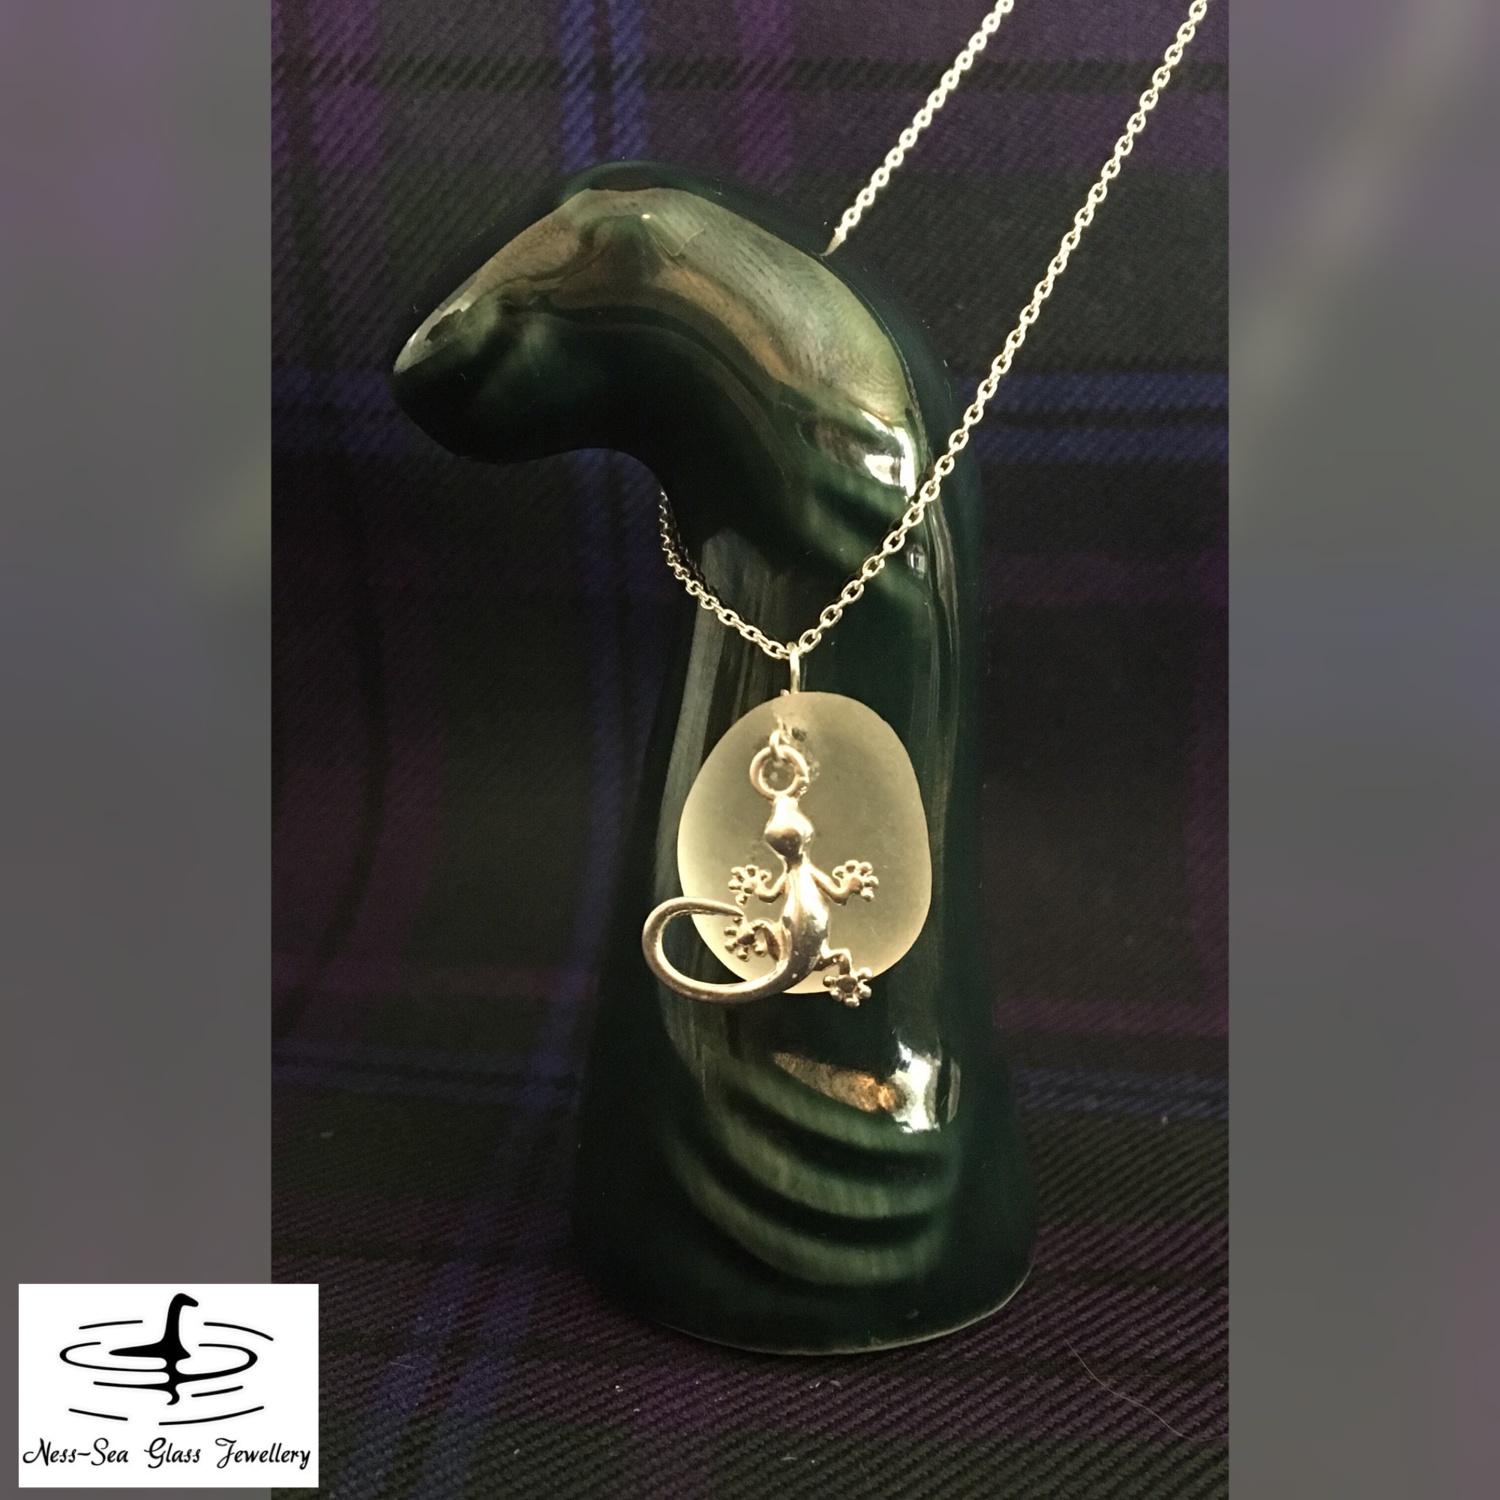 Clear Loch Ness Sea Glass Necklace with Sterling Silver Gecko design and Sterling Silver Chain